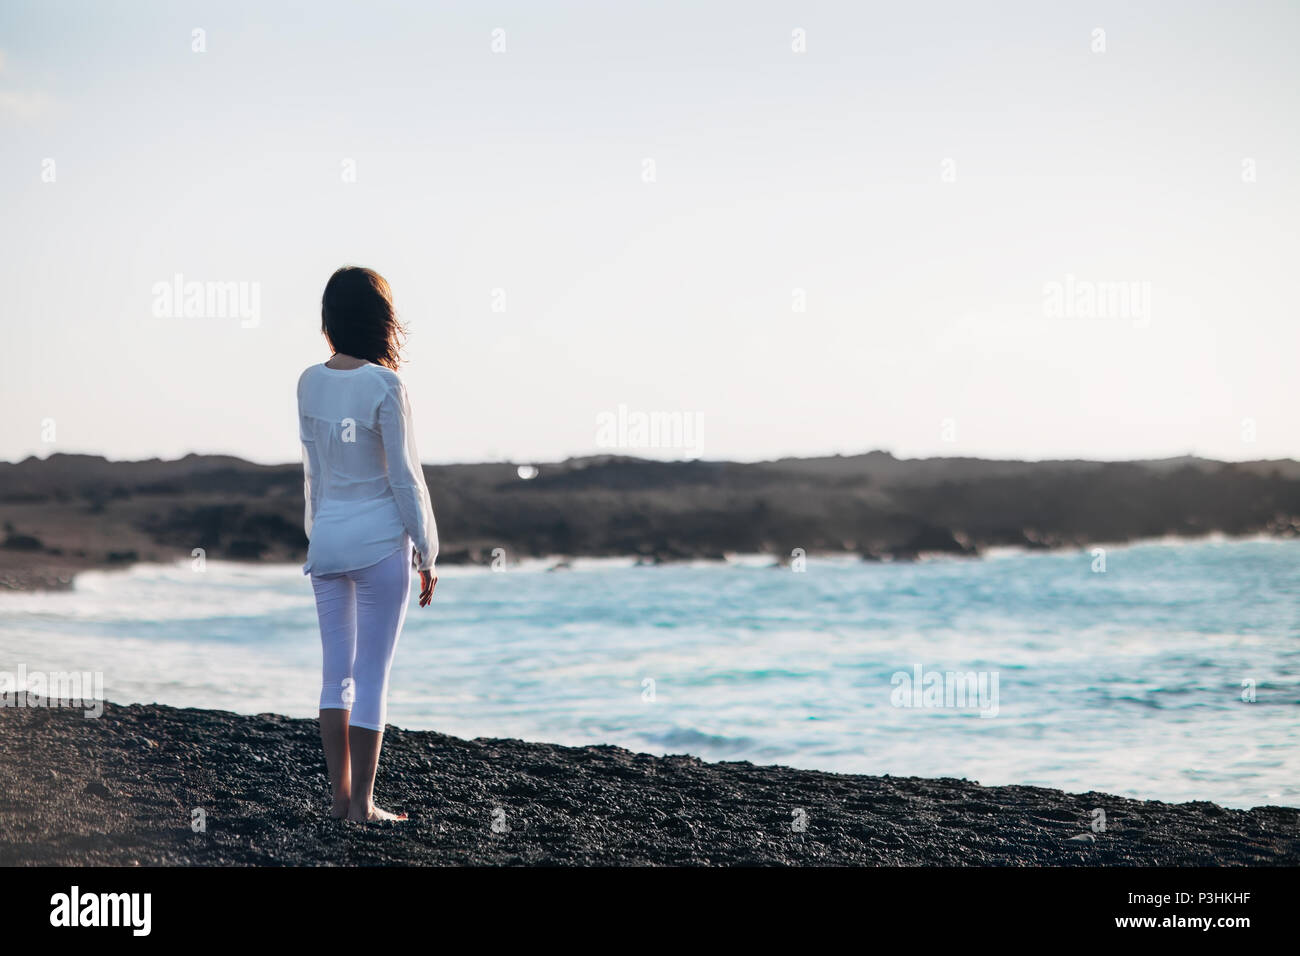 Back view of young lonely woman enjoying ocean on black sand beach. Canary Islands, Spain. Solitude concept - Stock Image